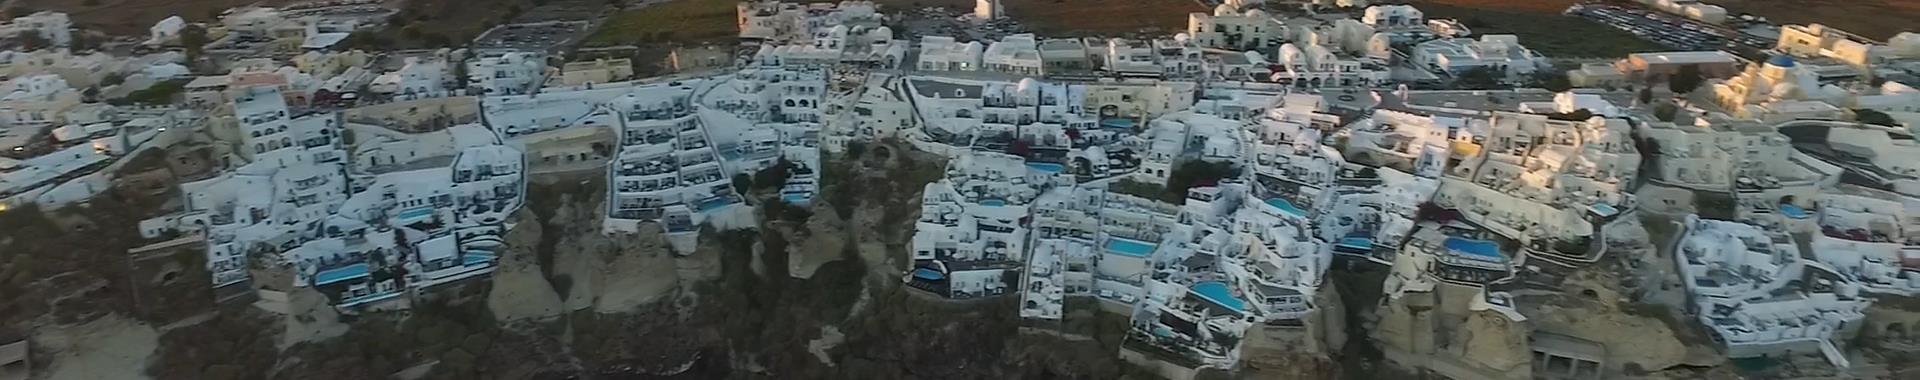 Oia Oia Hotels in Santorini island, Greece